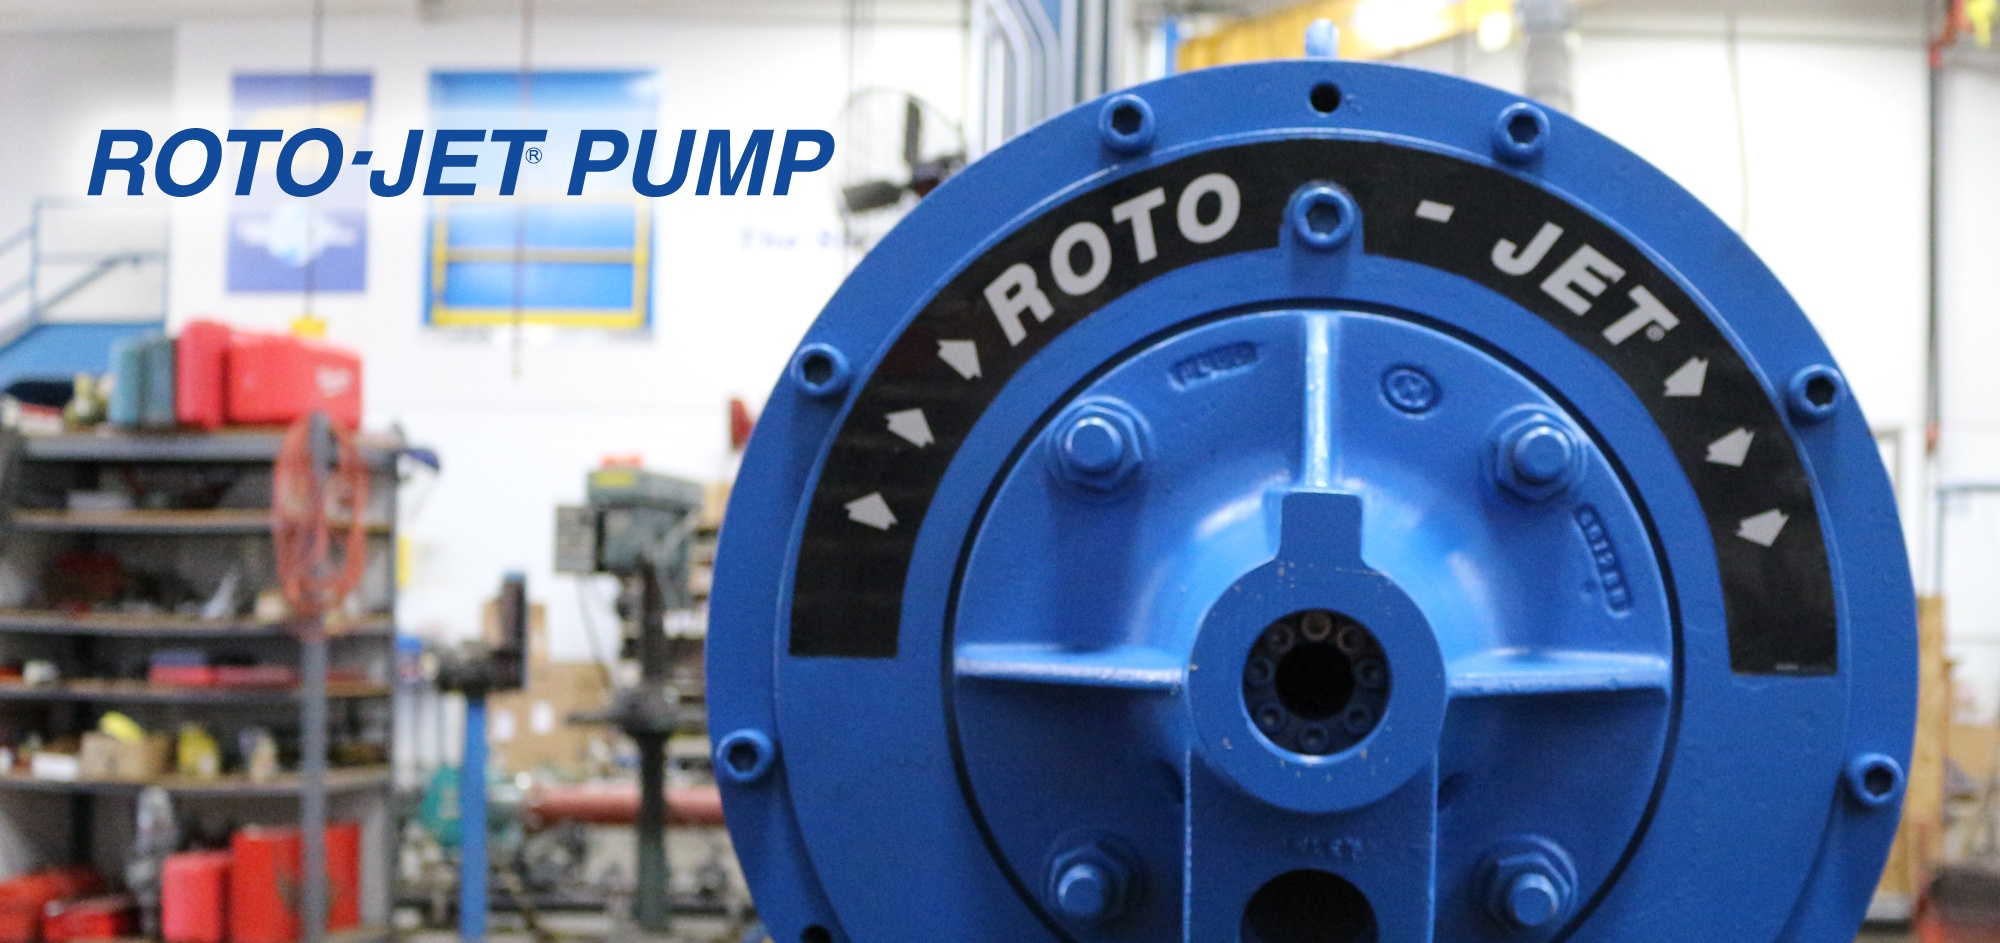 Roto Jet Pump Repair